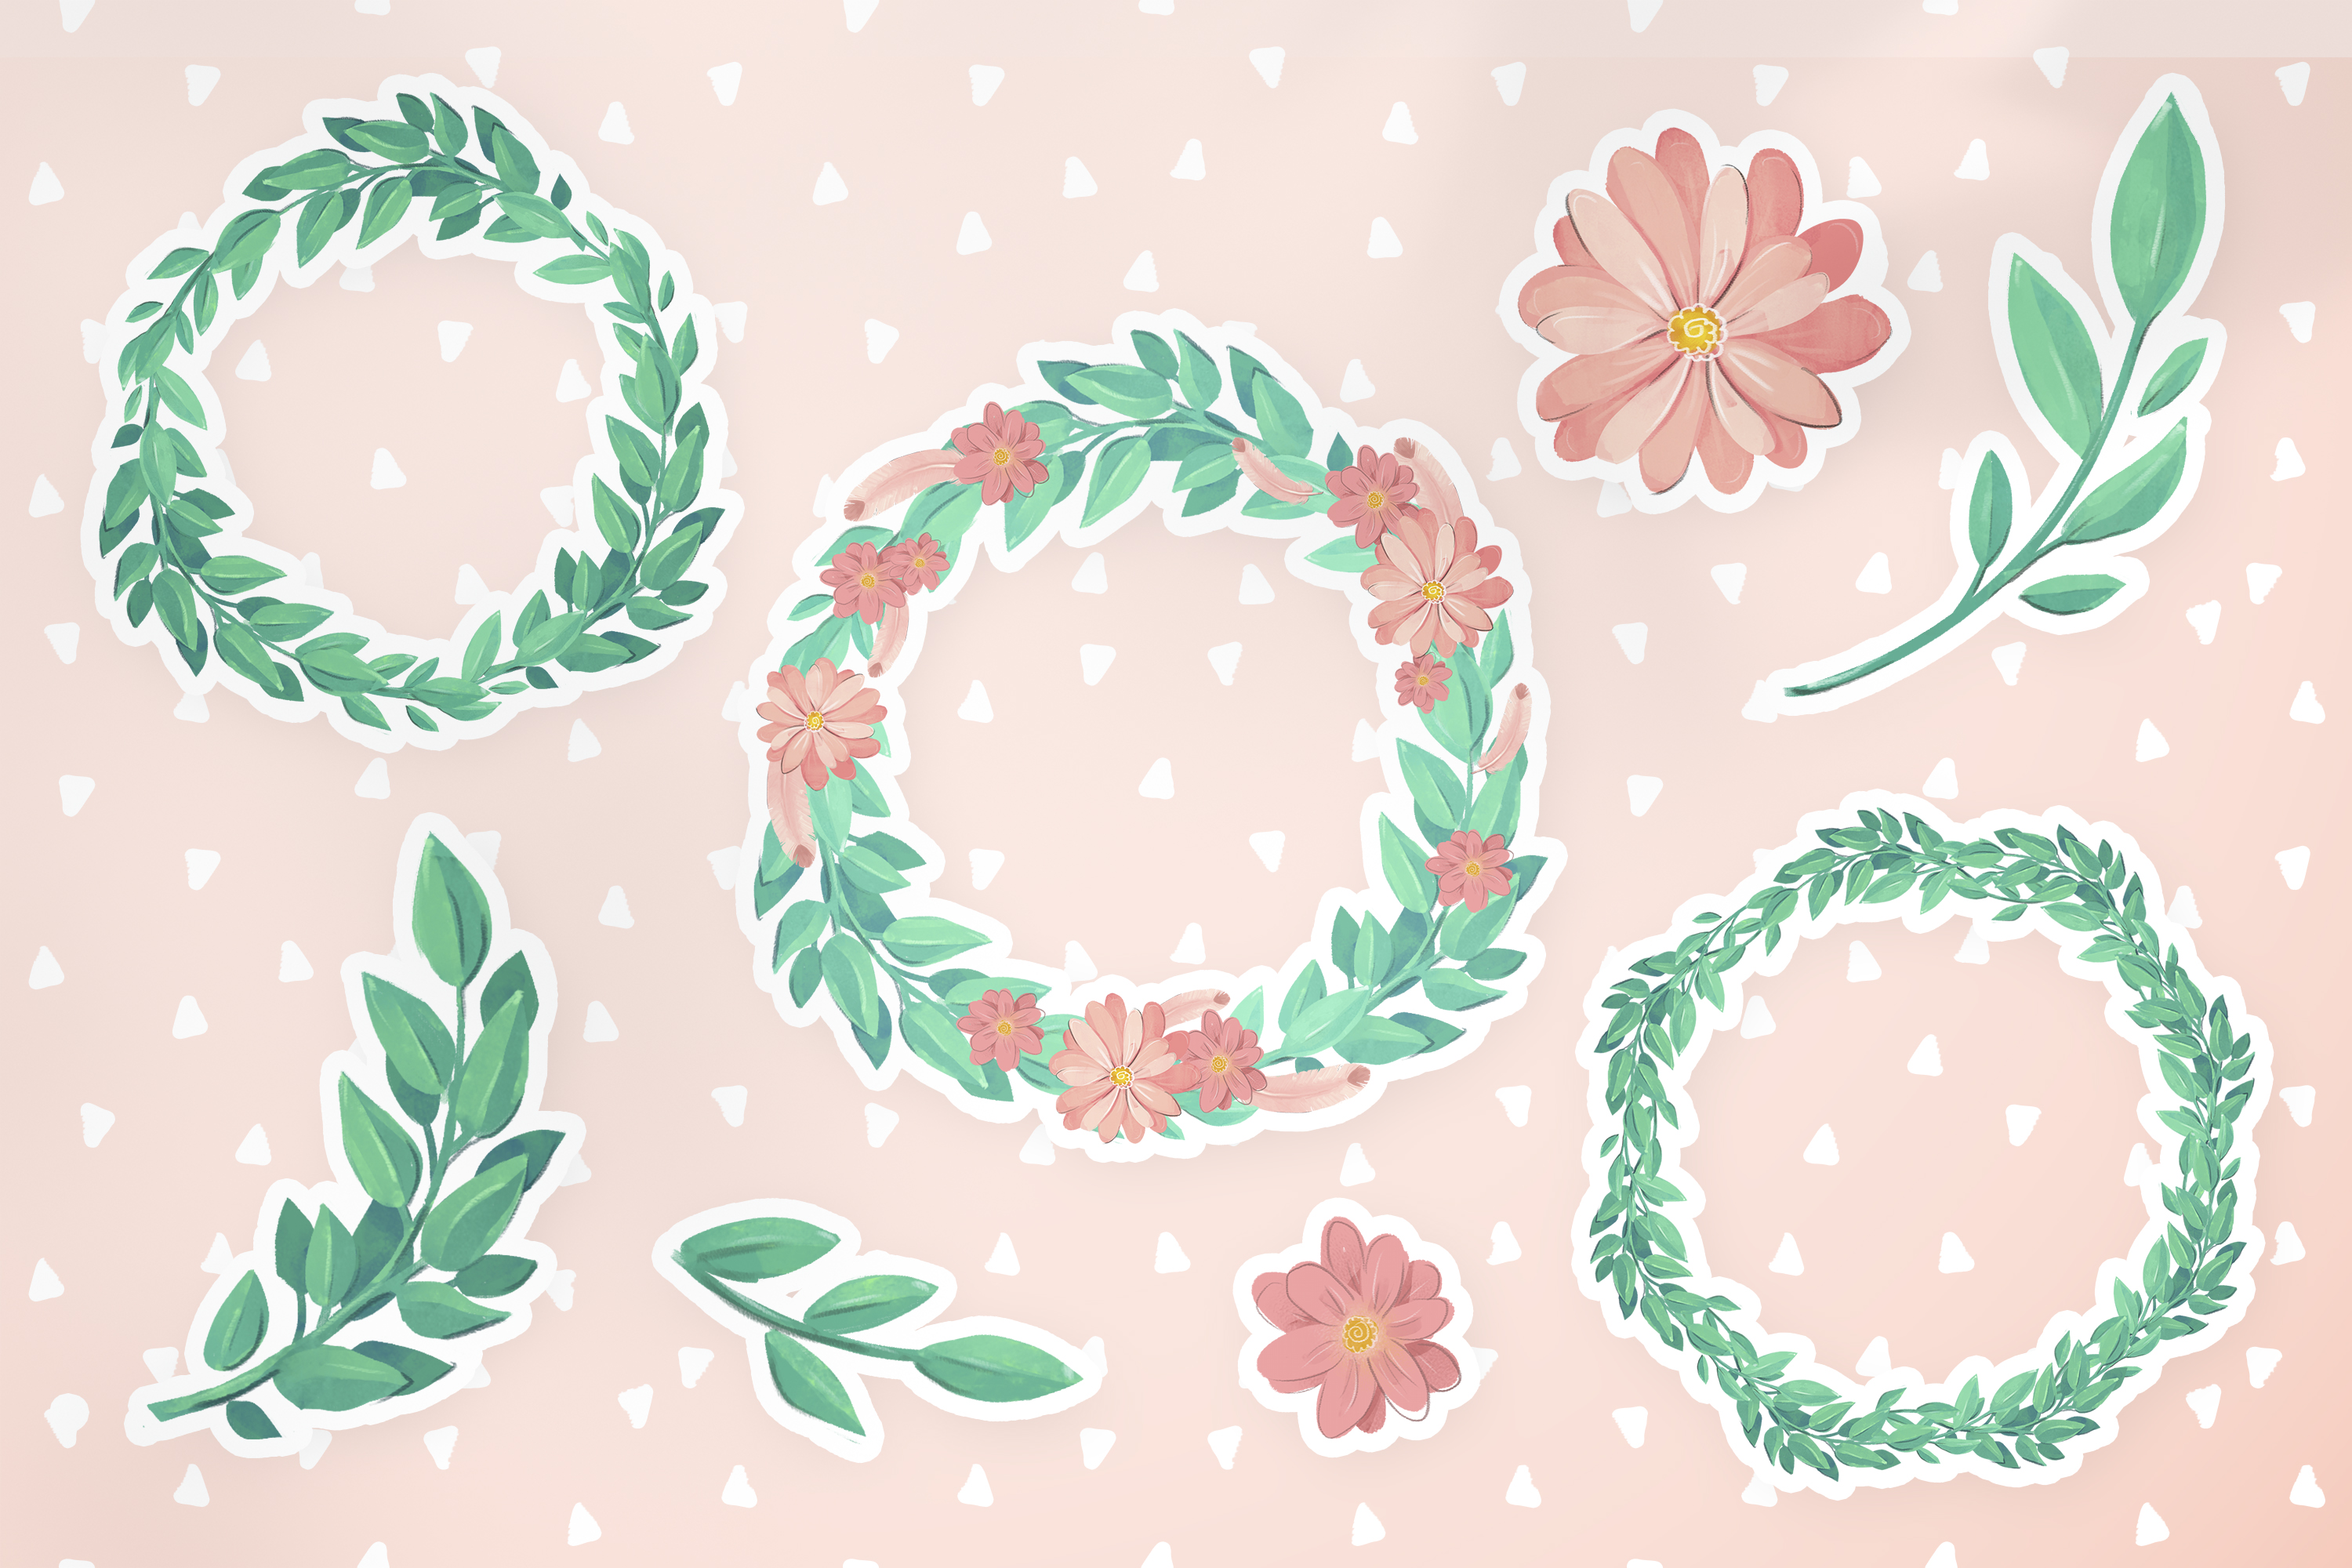 Download Free Cute Wreaths And Flowers Graphic By Digi Potwor Creative Fabrica for Cricut Explore, Silhouette and other cutting machines.